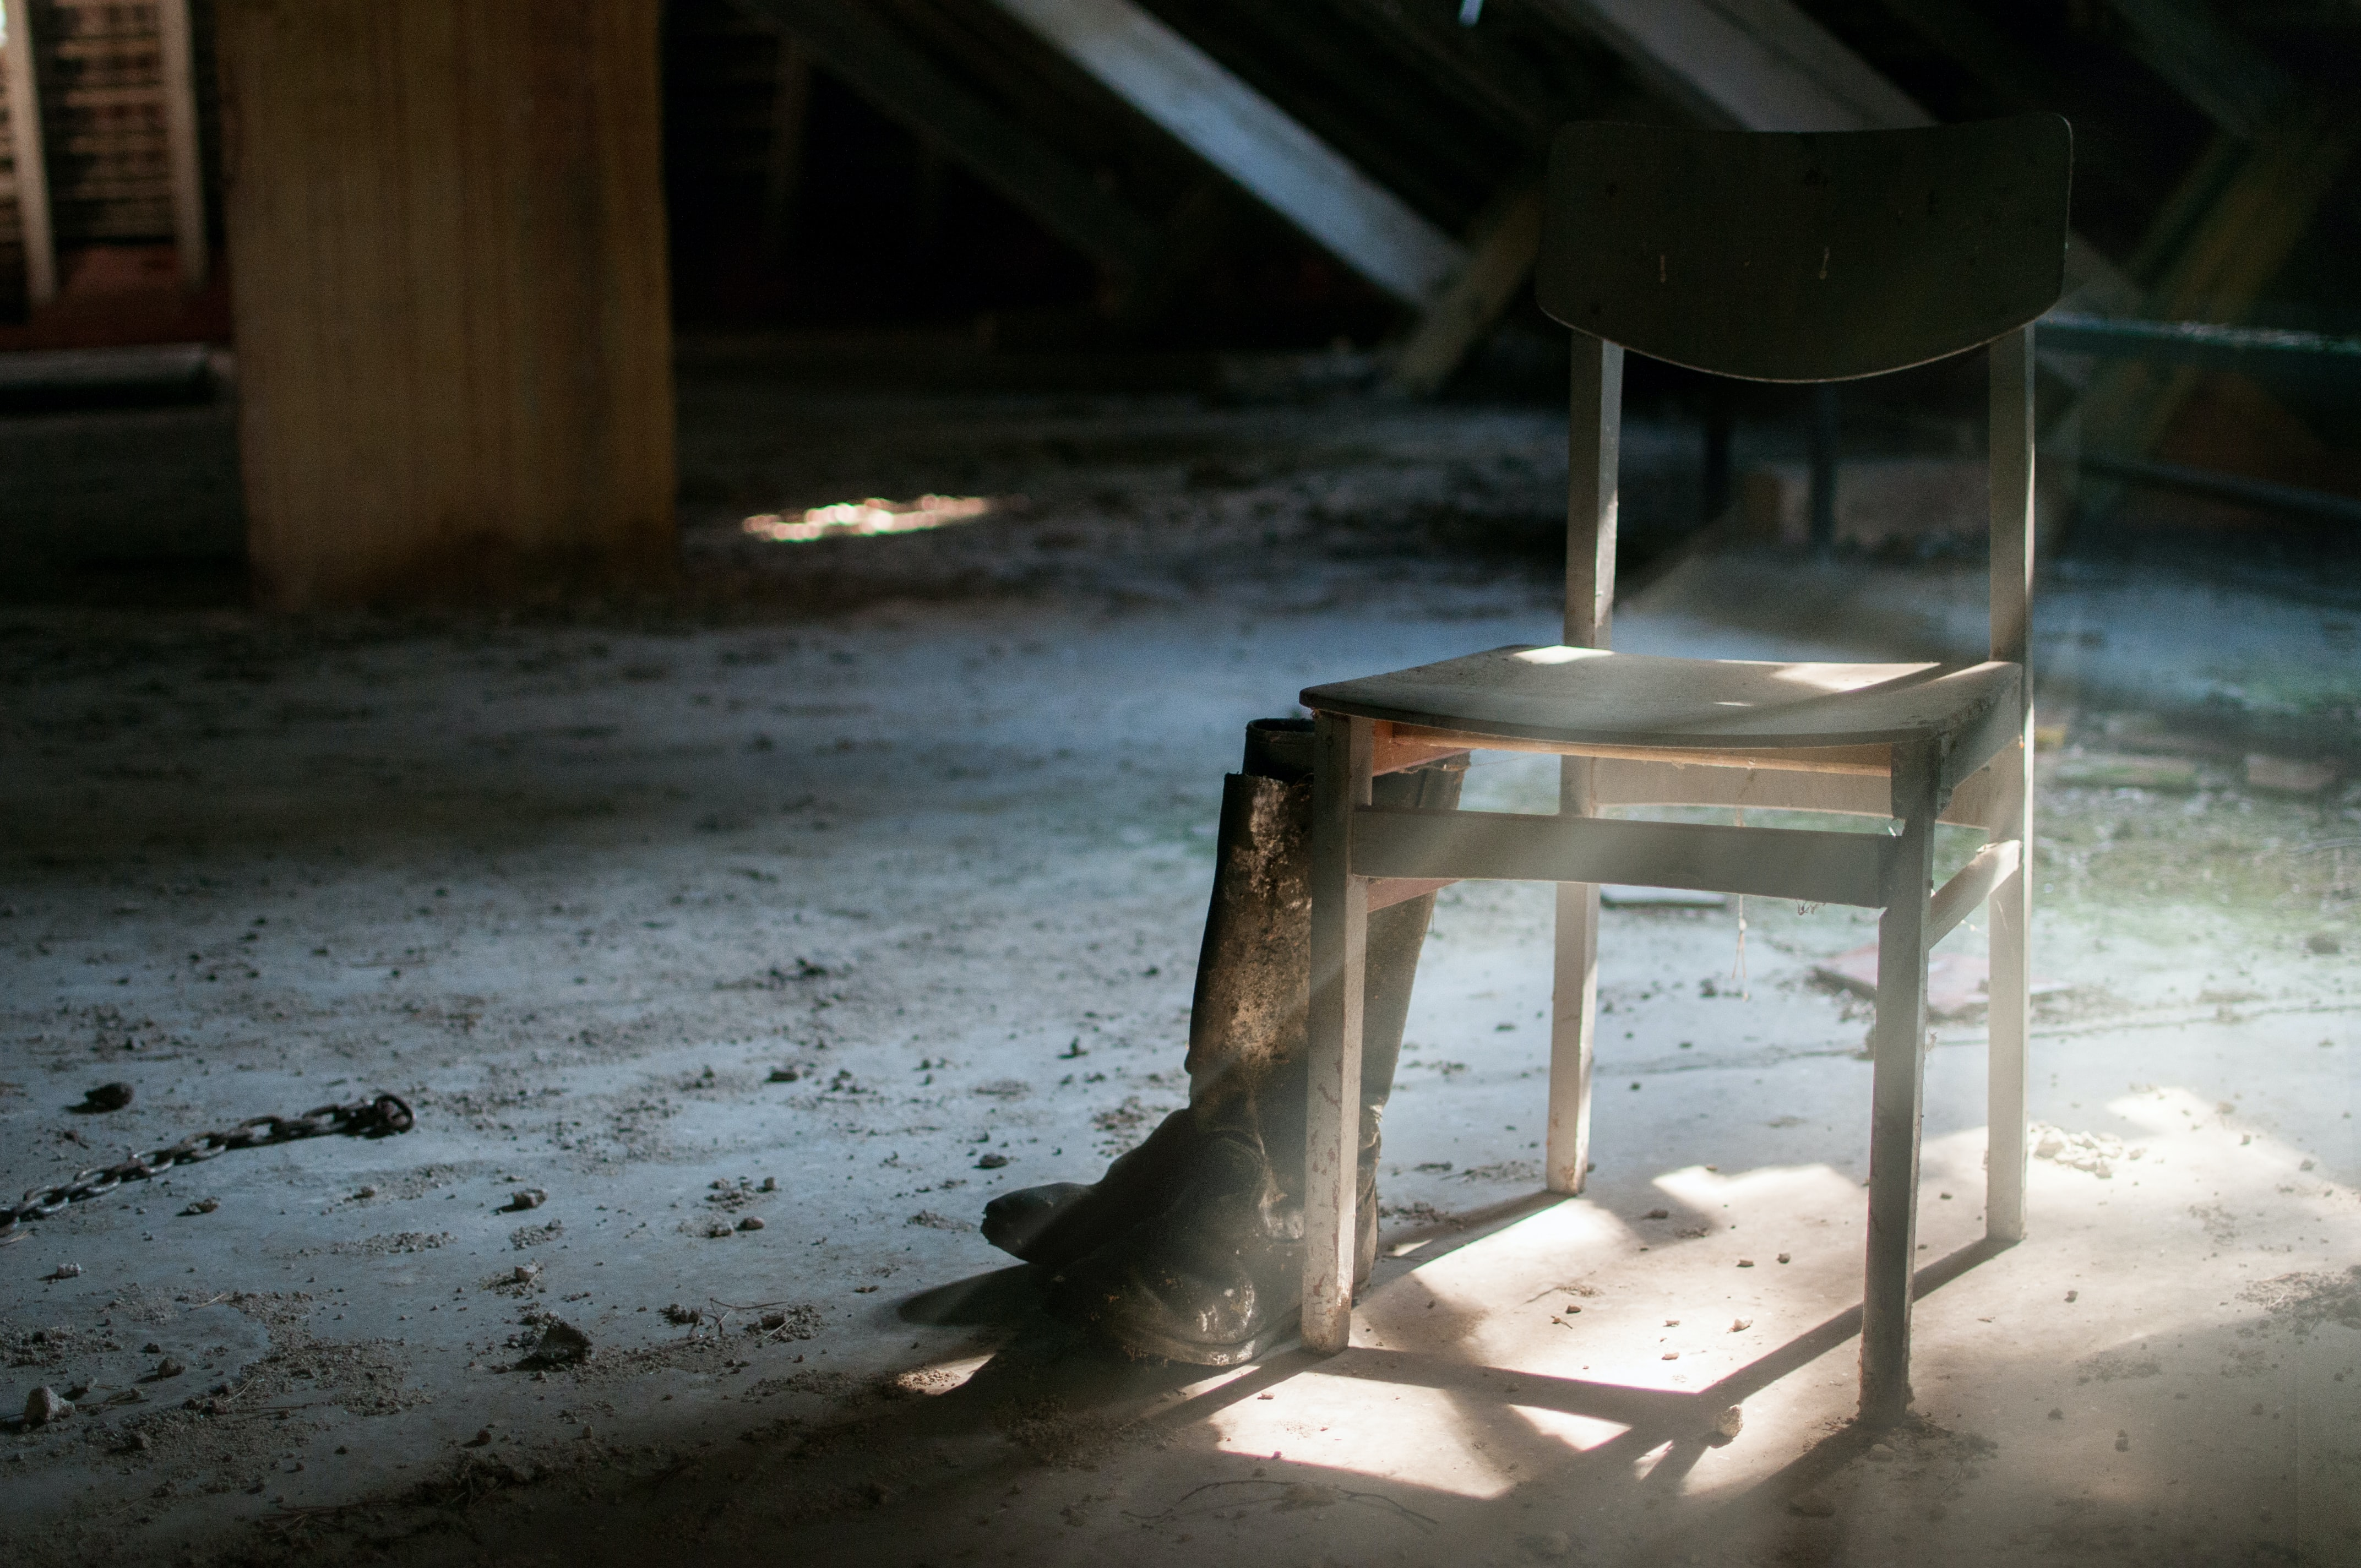 pair of boots beside chair